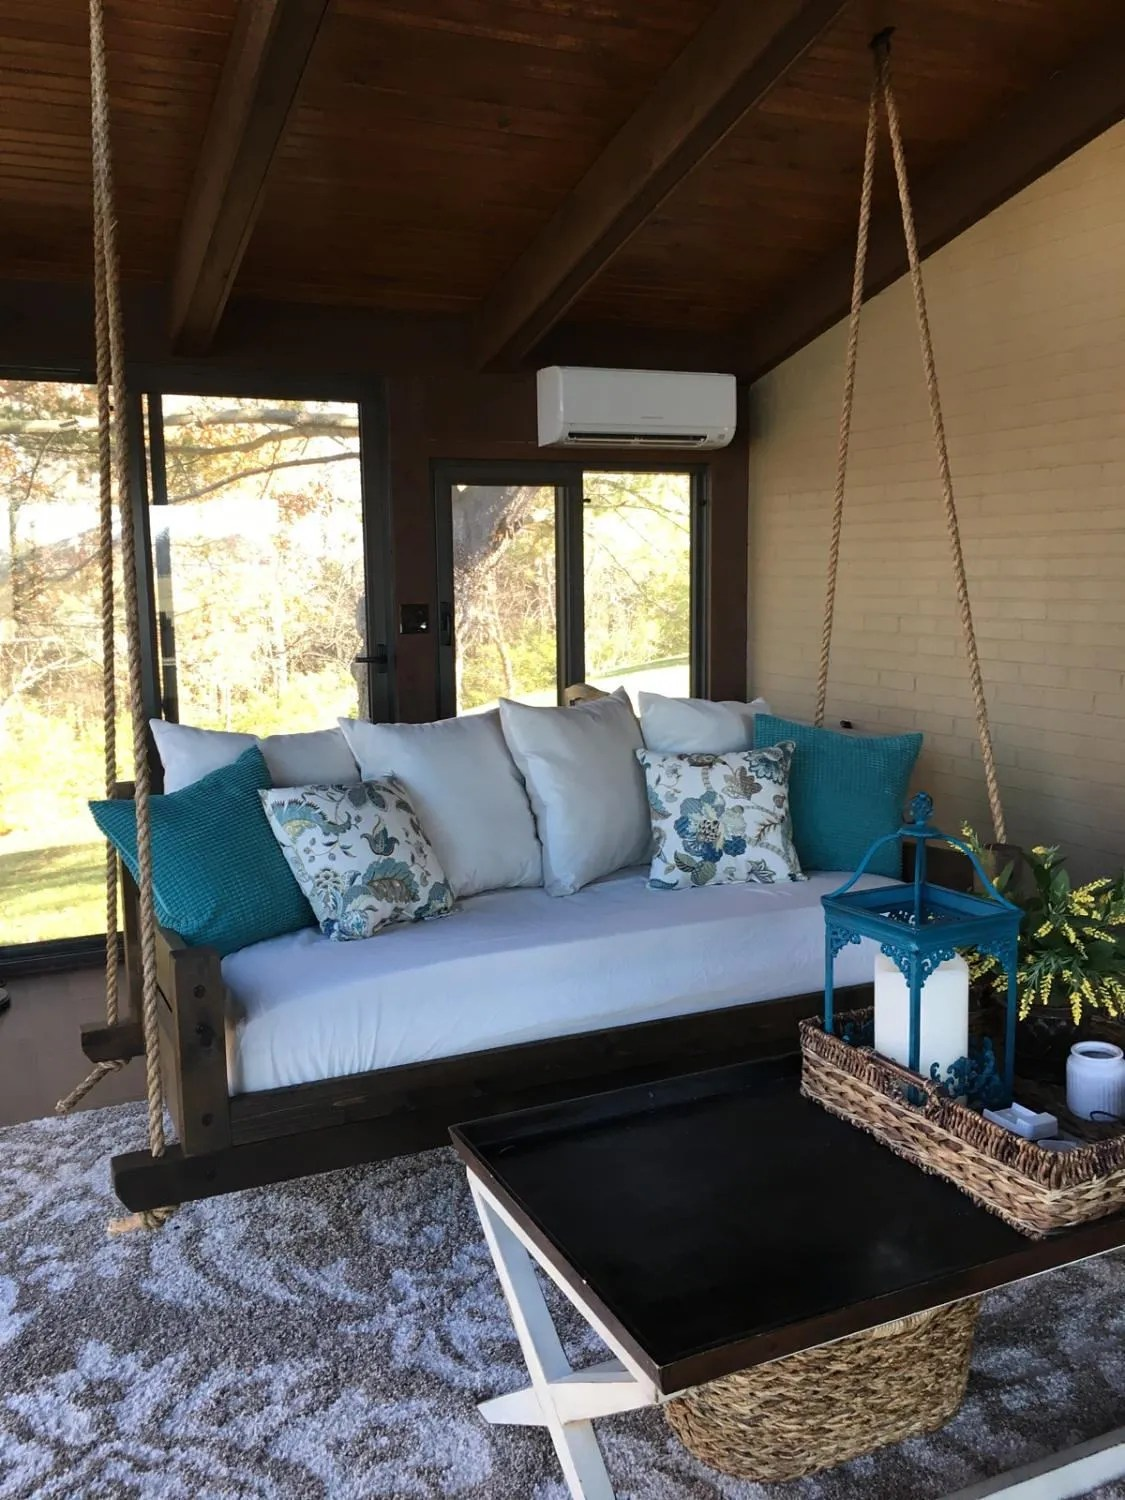 Handcrafted Cedar Swing Bed Daybed